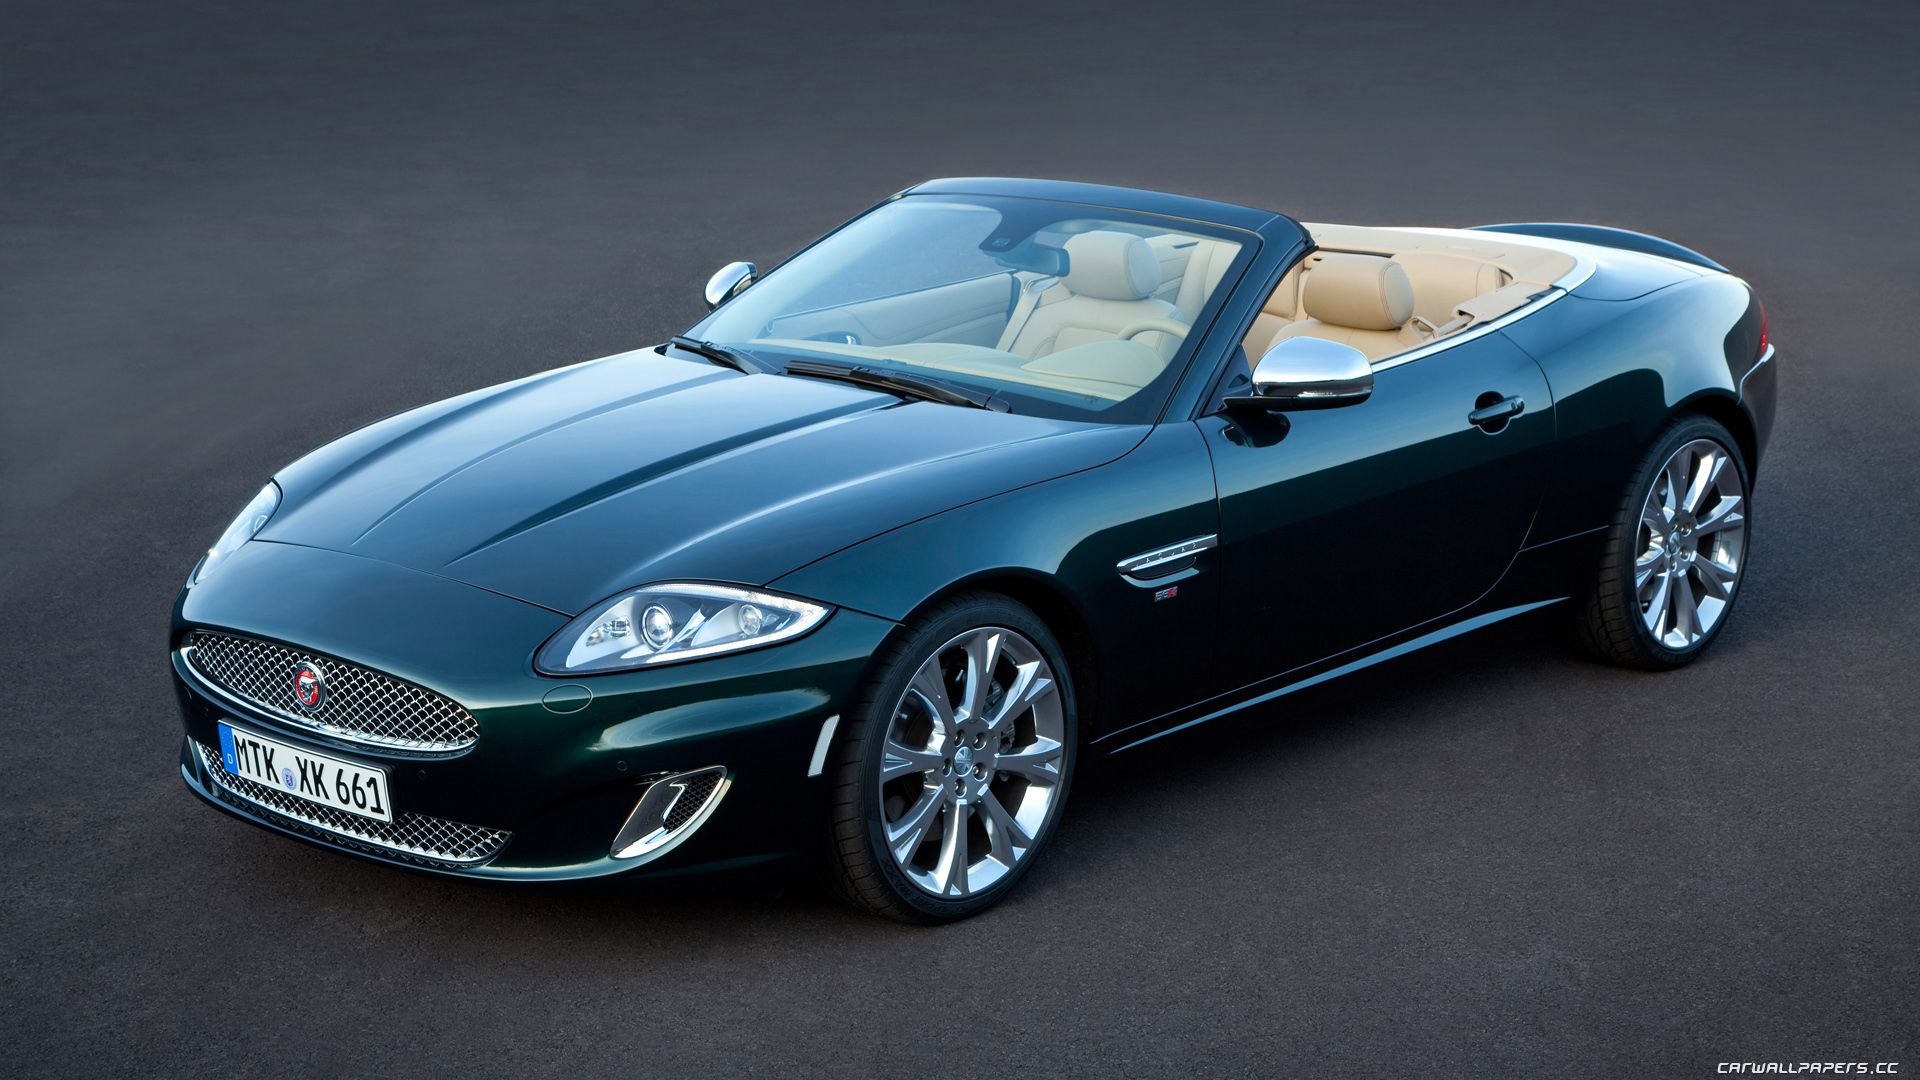 2014 Jaguar XK Convertible. Cars Wallpapers Jaguar XK66 Convertible .